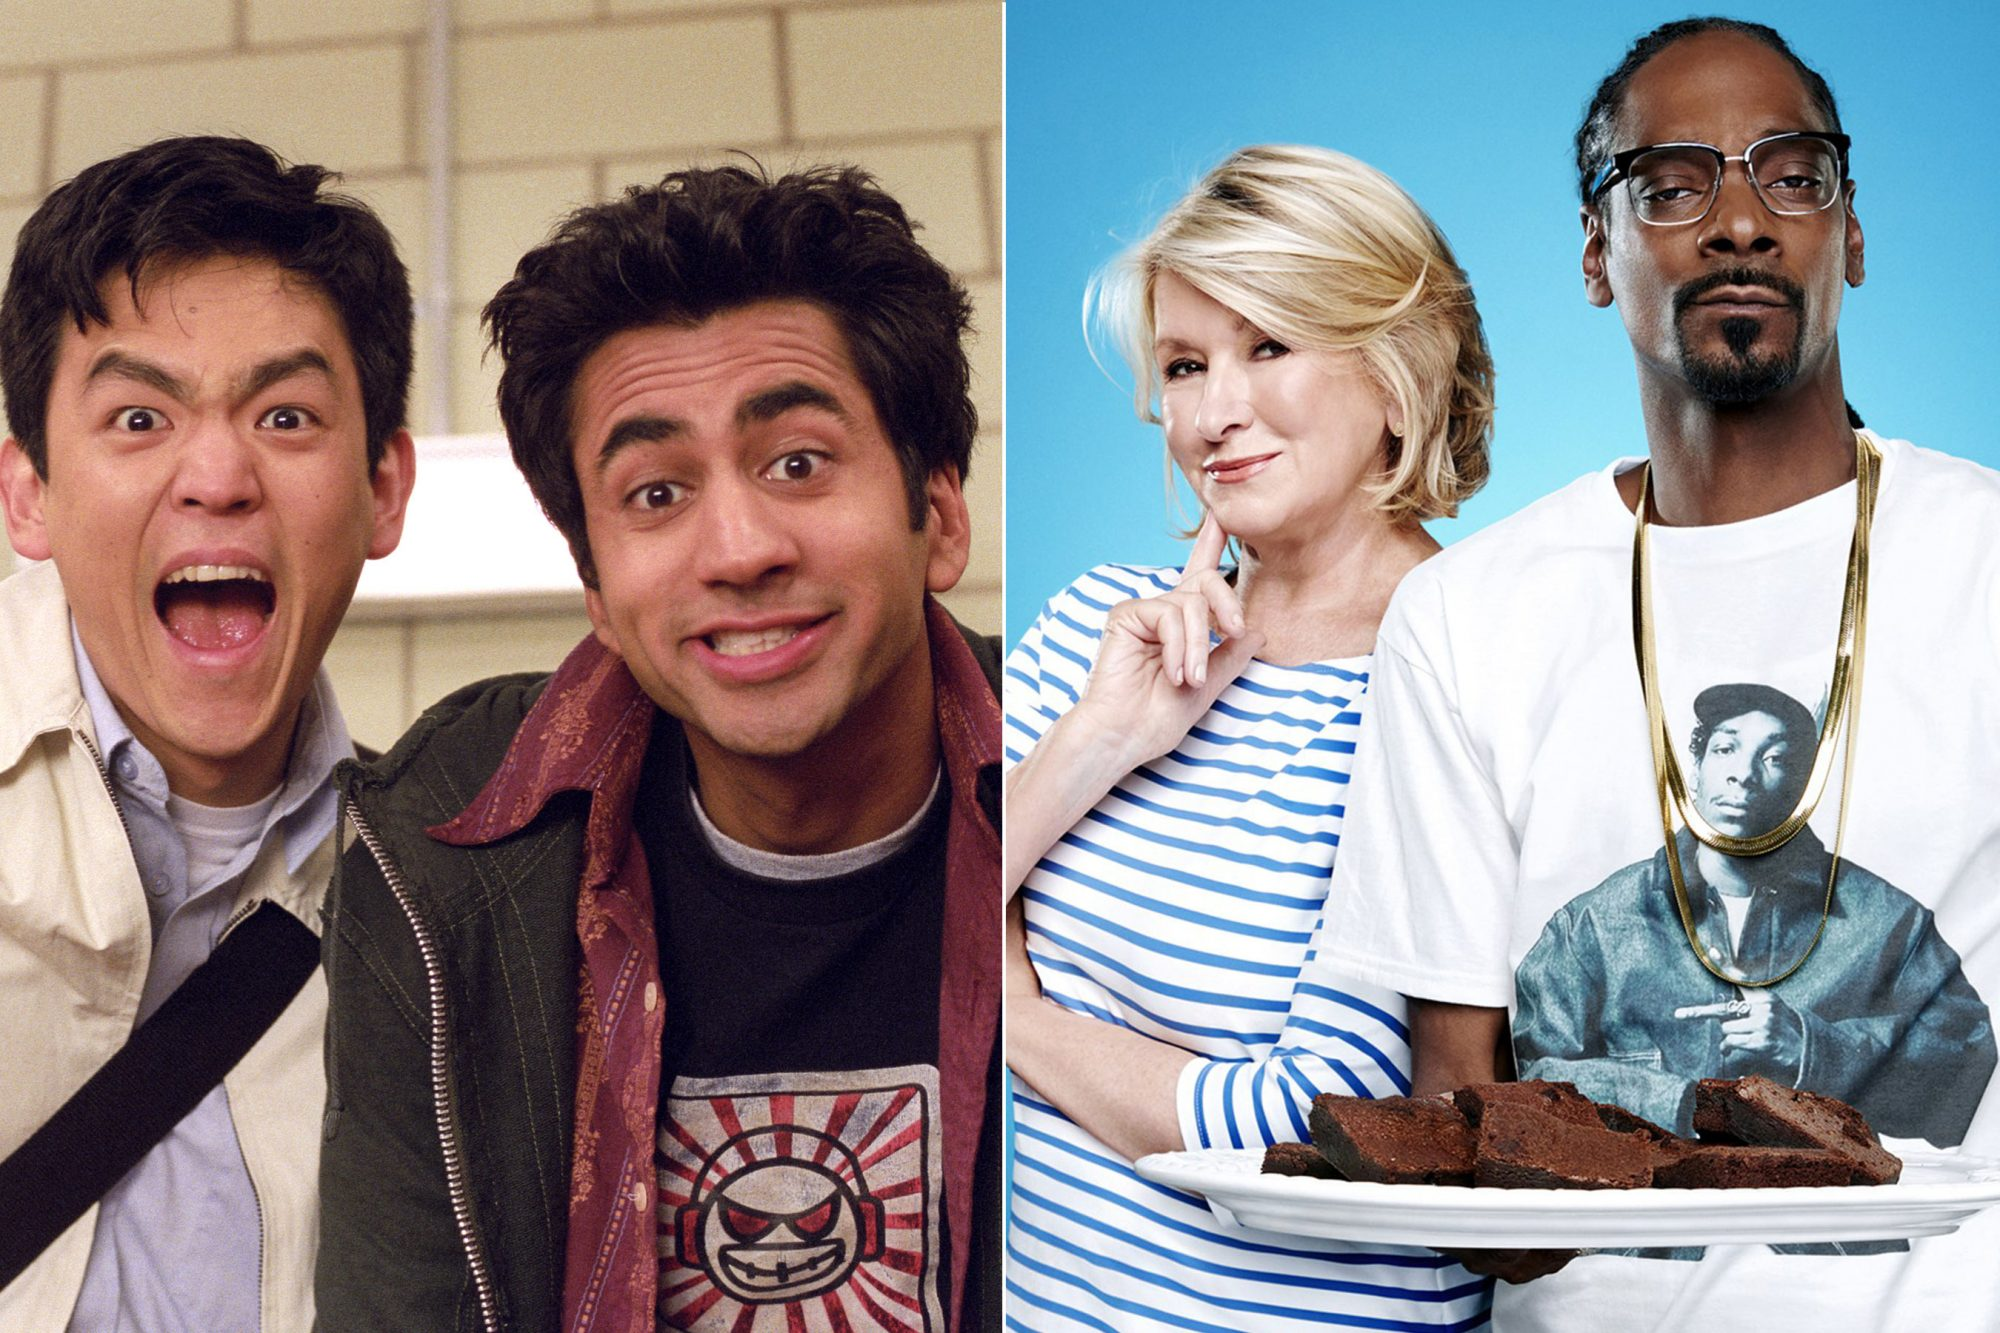 Harold and Kumar & Snoop Dogg and Martha Stewart